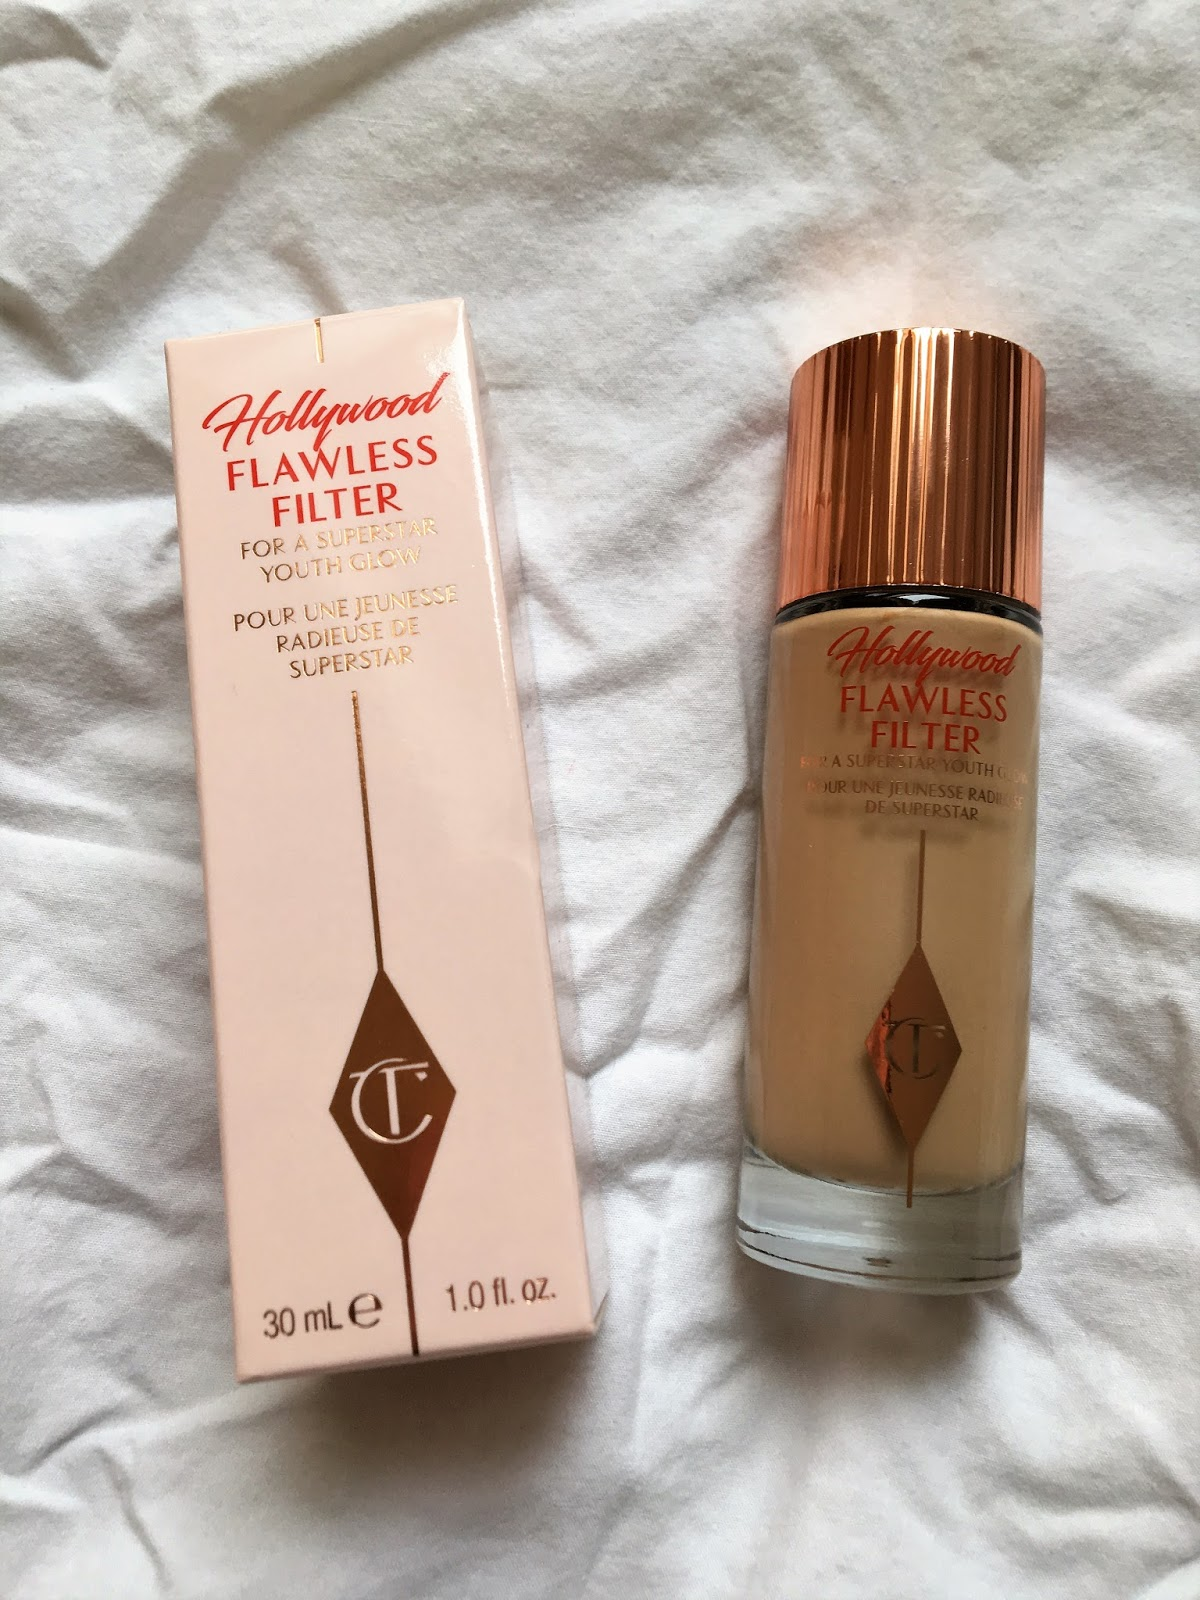 Hollywood Flawless Filter by Charlotte Tilbury #21